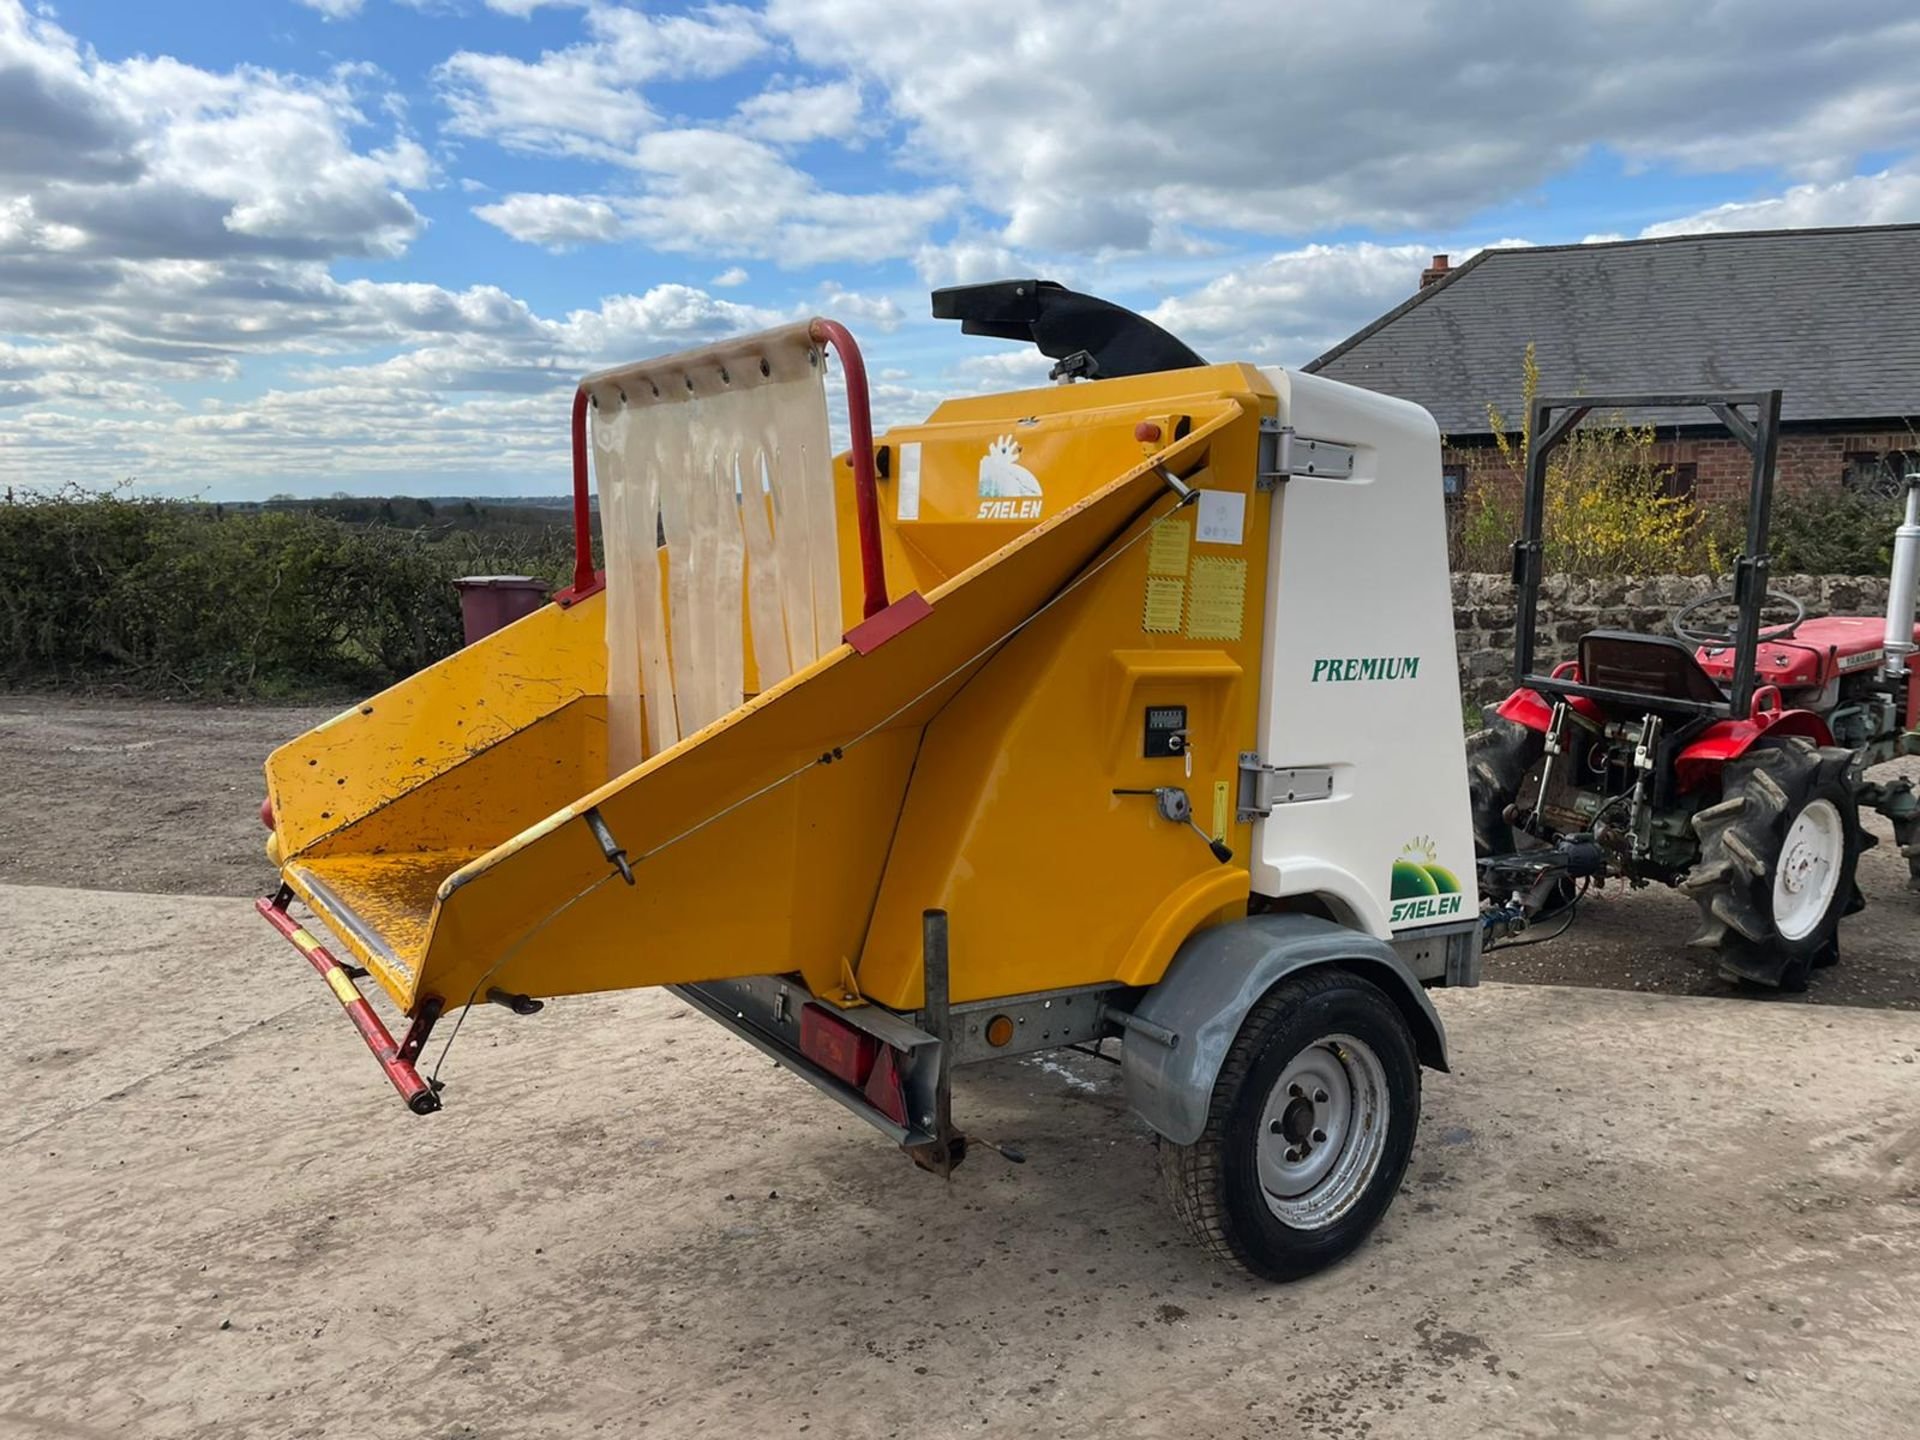 2007 SAELEN PREMIUM WOOD CHIPPER, RUNS AND CHIPS, IN GOOD CONDITION, LOW 160 HOURS *PLUS VAT* - Image 3 of 7